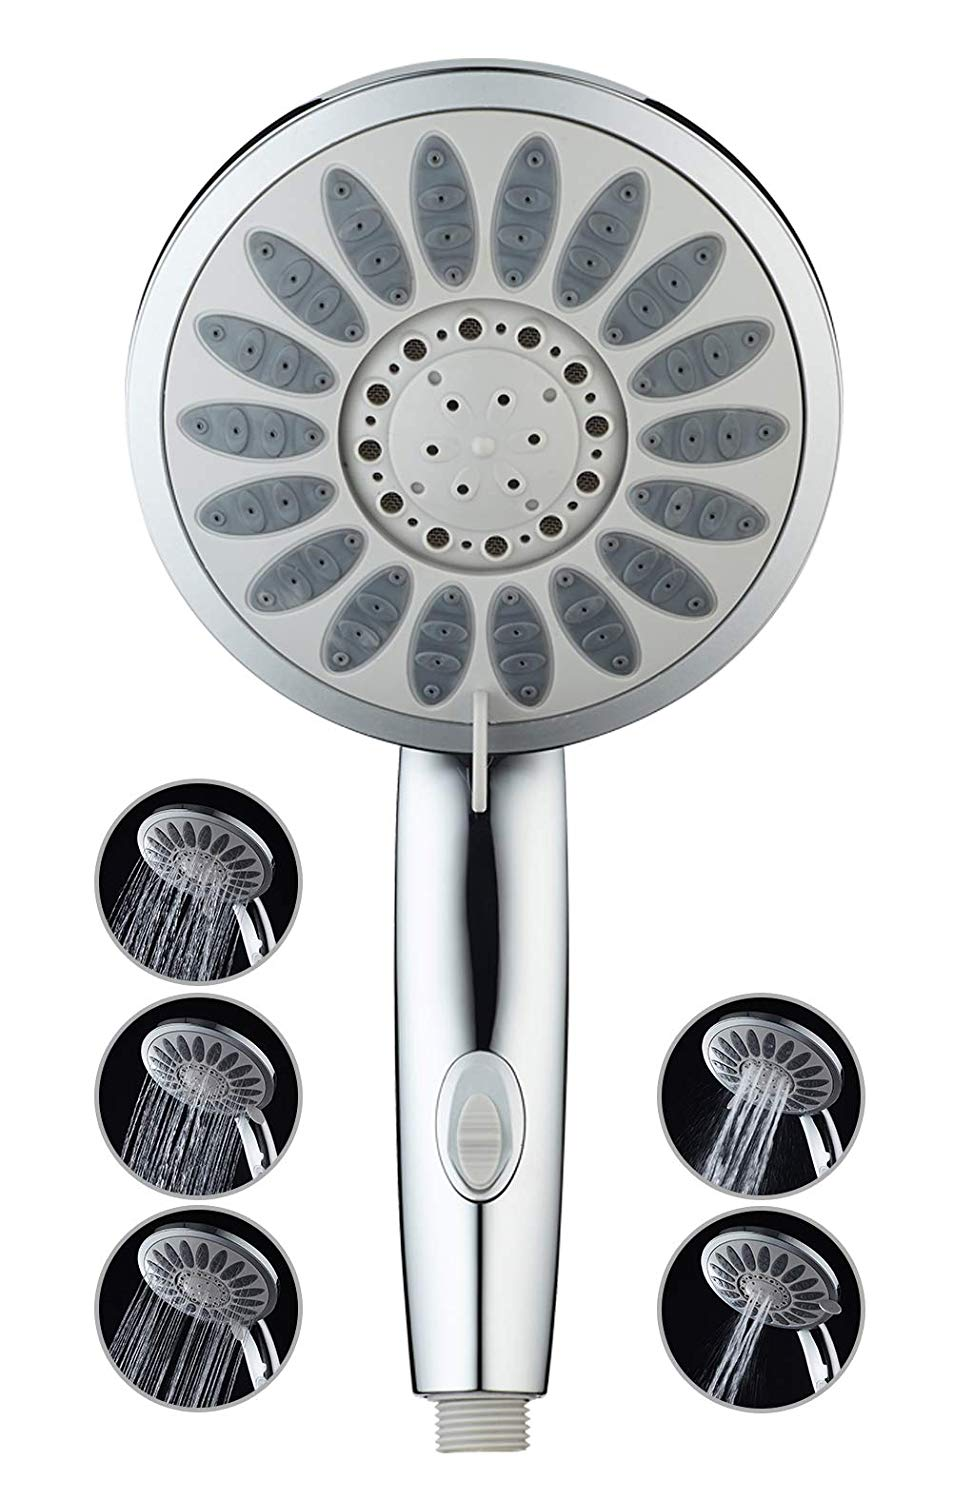 KAIREY Handheld Shower Head High Pressure 6-inch Face 5 Spray Settings Massage Spa Hand Showerhead Polished Chrome for the Ultimate Shower Experience